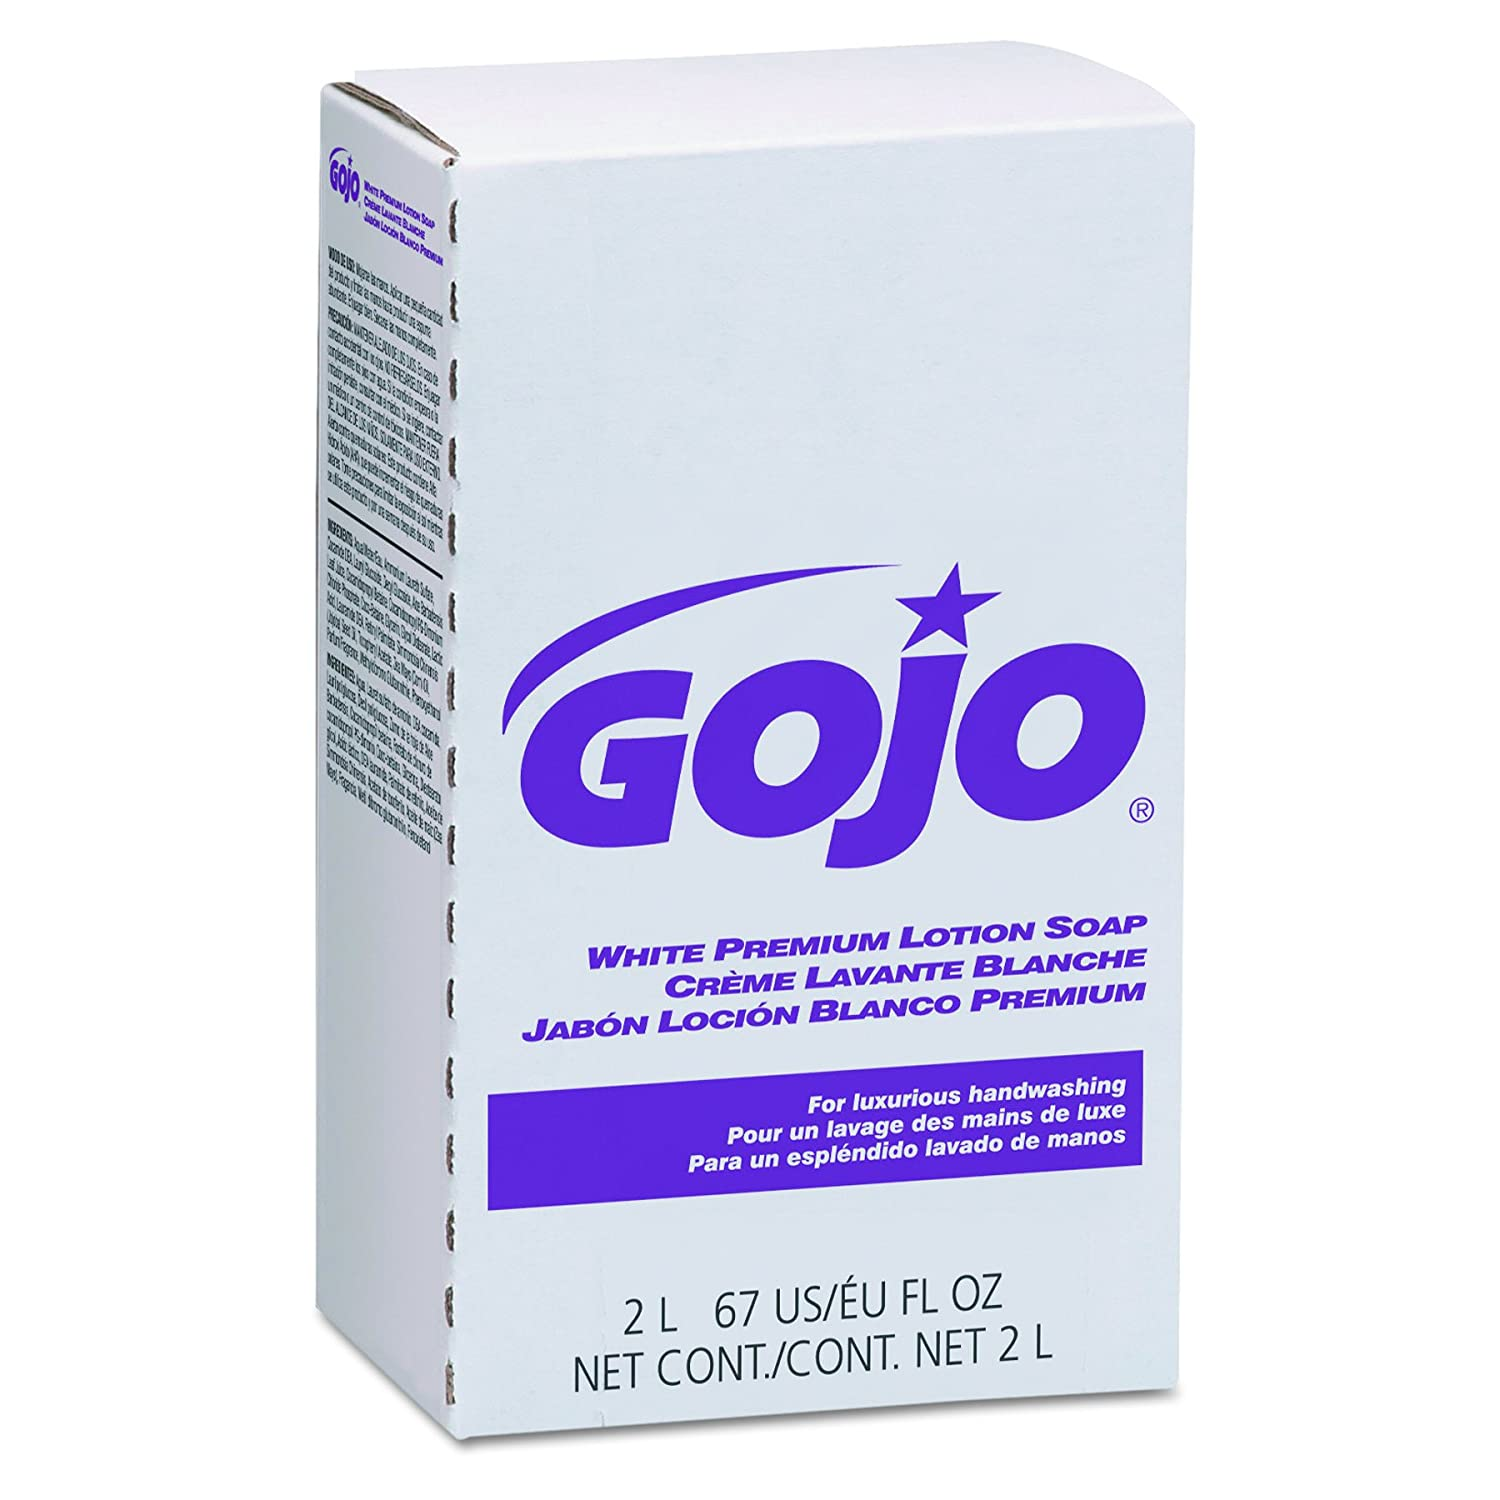 GOJO White Premium Lotion Soap, Spring Rain Fragrance, EcoLogo Certified, 2000 mL Lotion Hand Soap Refill for GOJO NXT Push-Style Dispenser (Pack of 4) - 2204-04